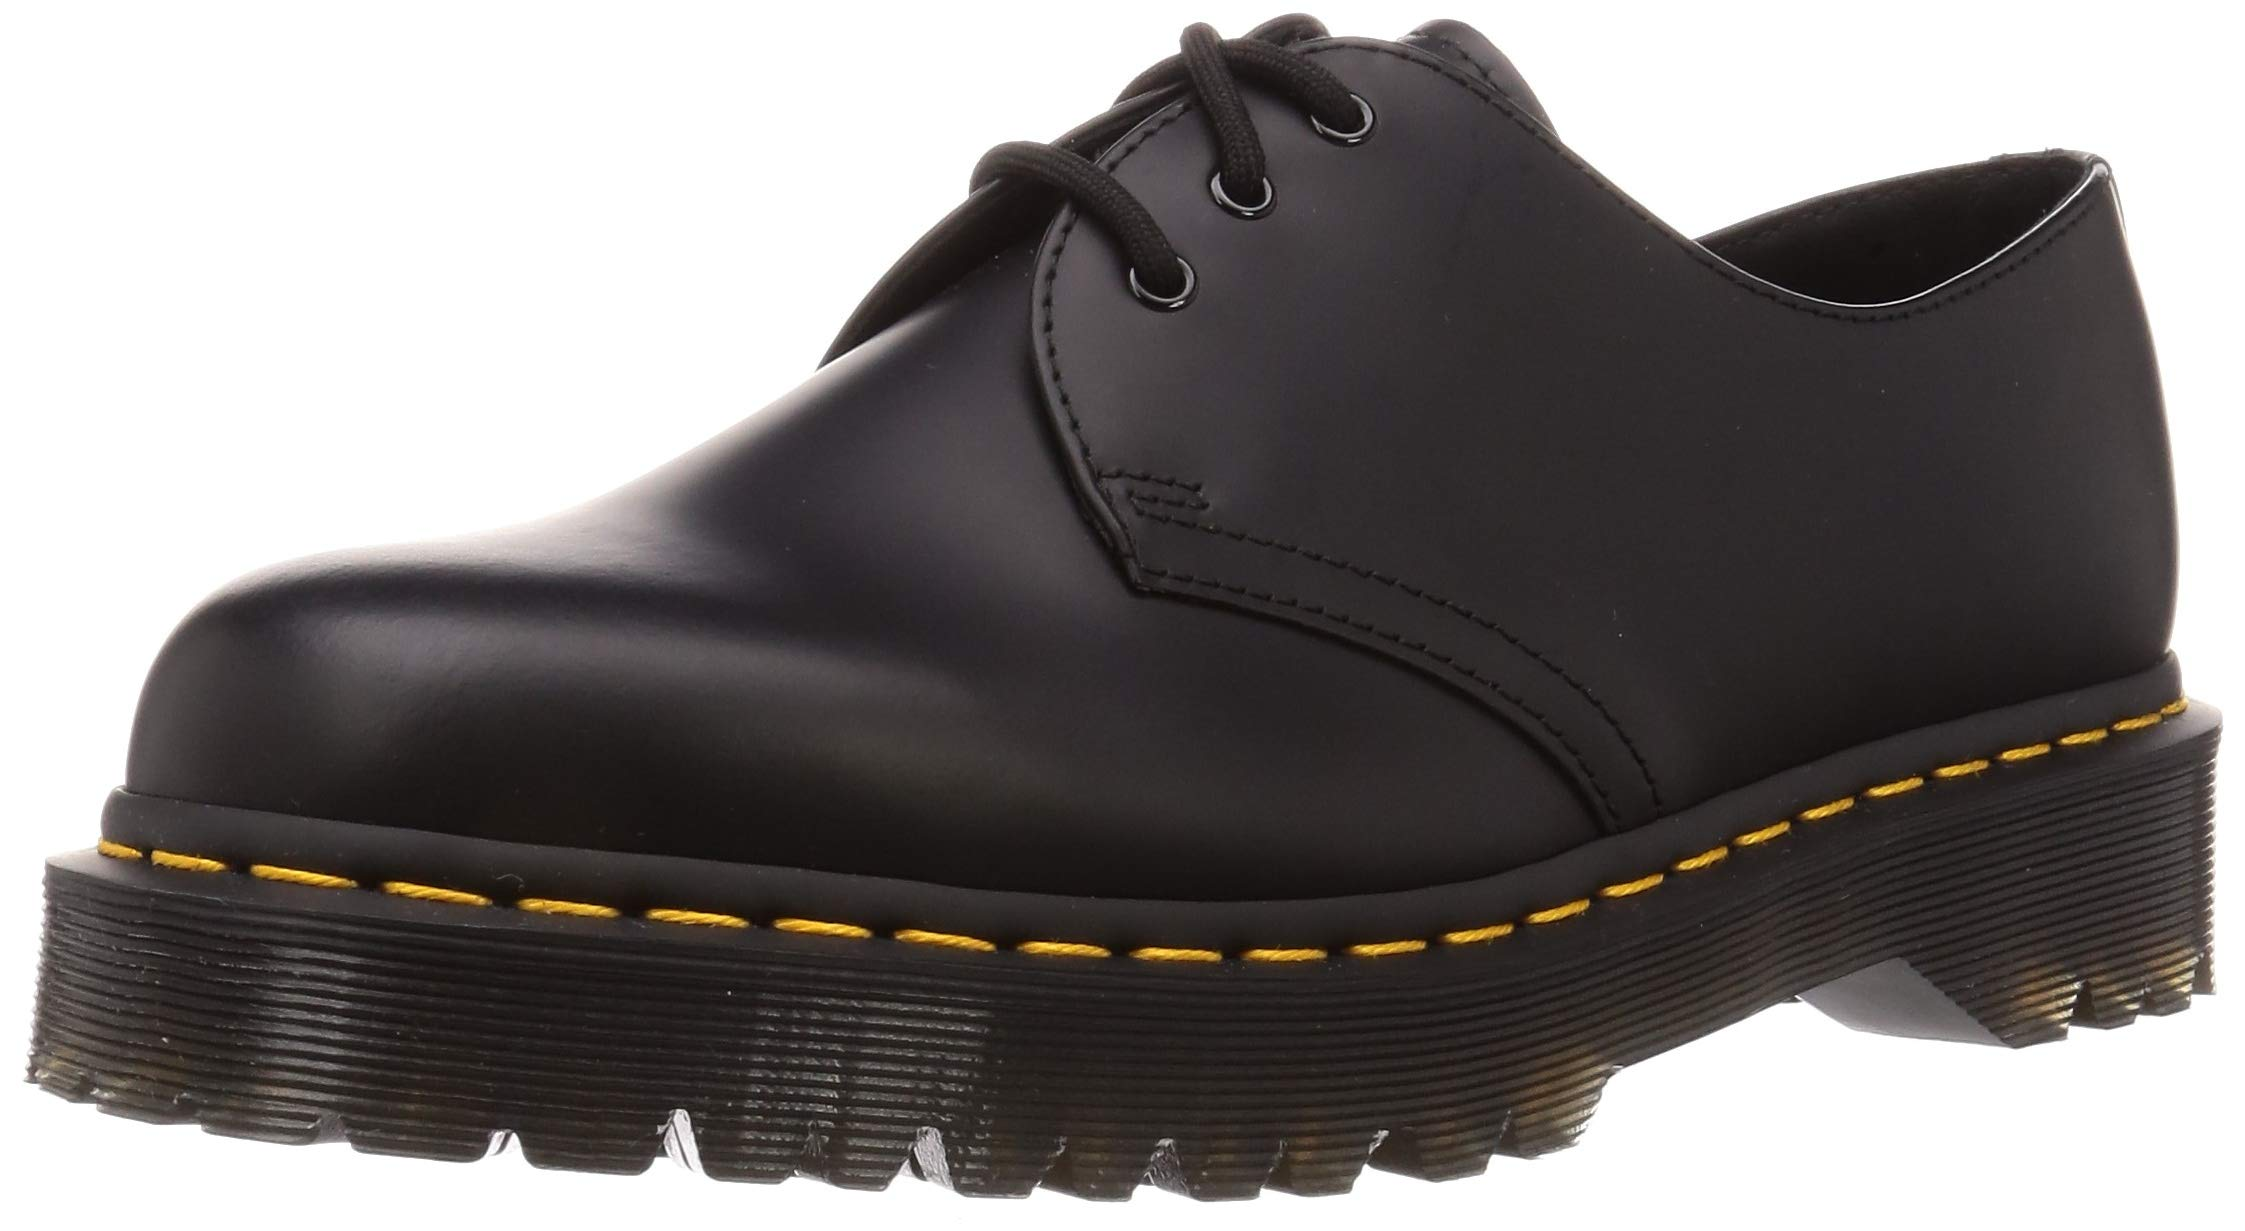 Dr. Martens Unisex 1461 Bex Smooth Oxford